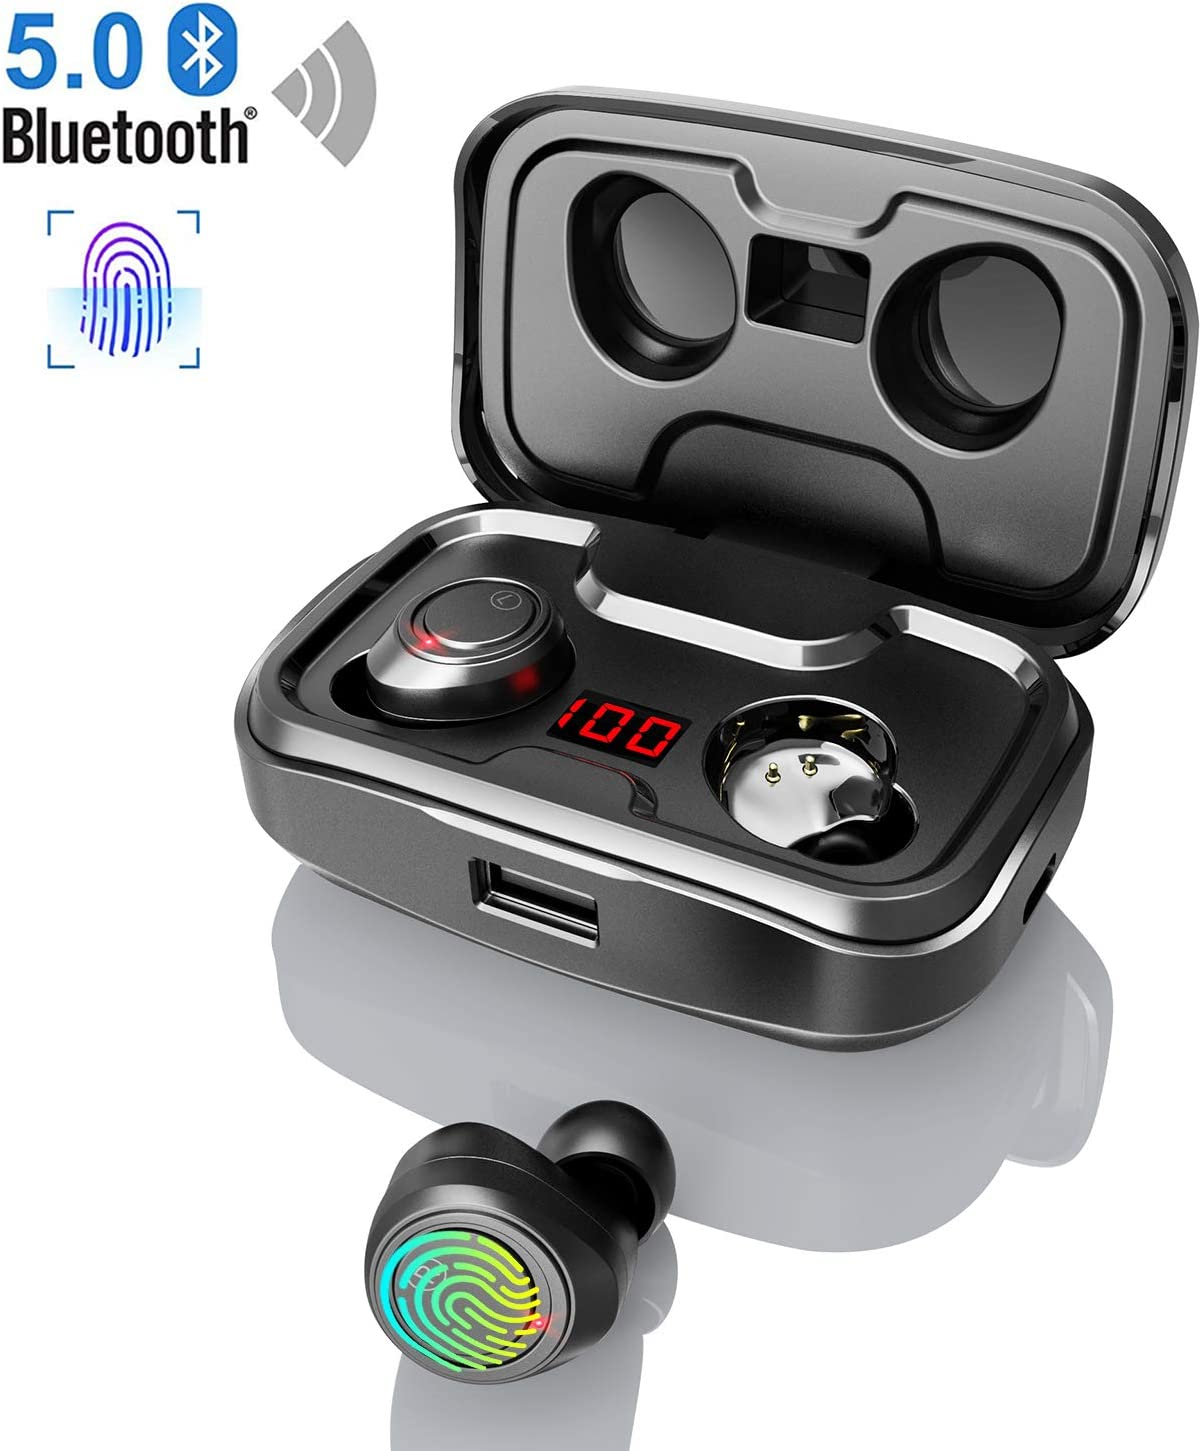 Bluetooth 5.0 Kopfhörer Touch Control 3600mAh Ladebox Wireless Charger Headset